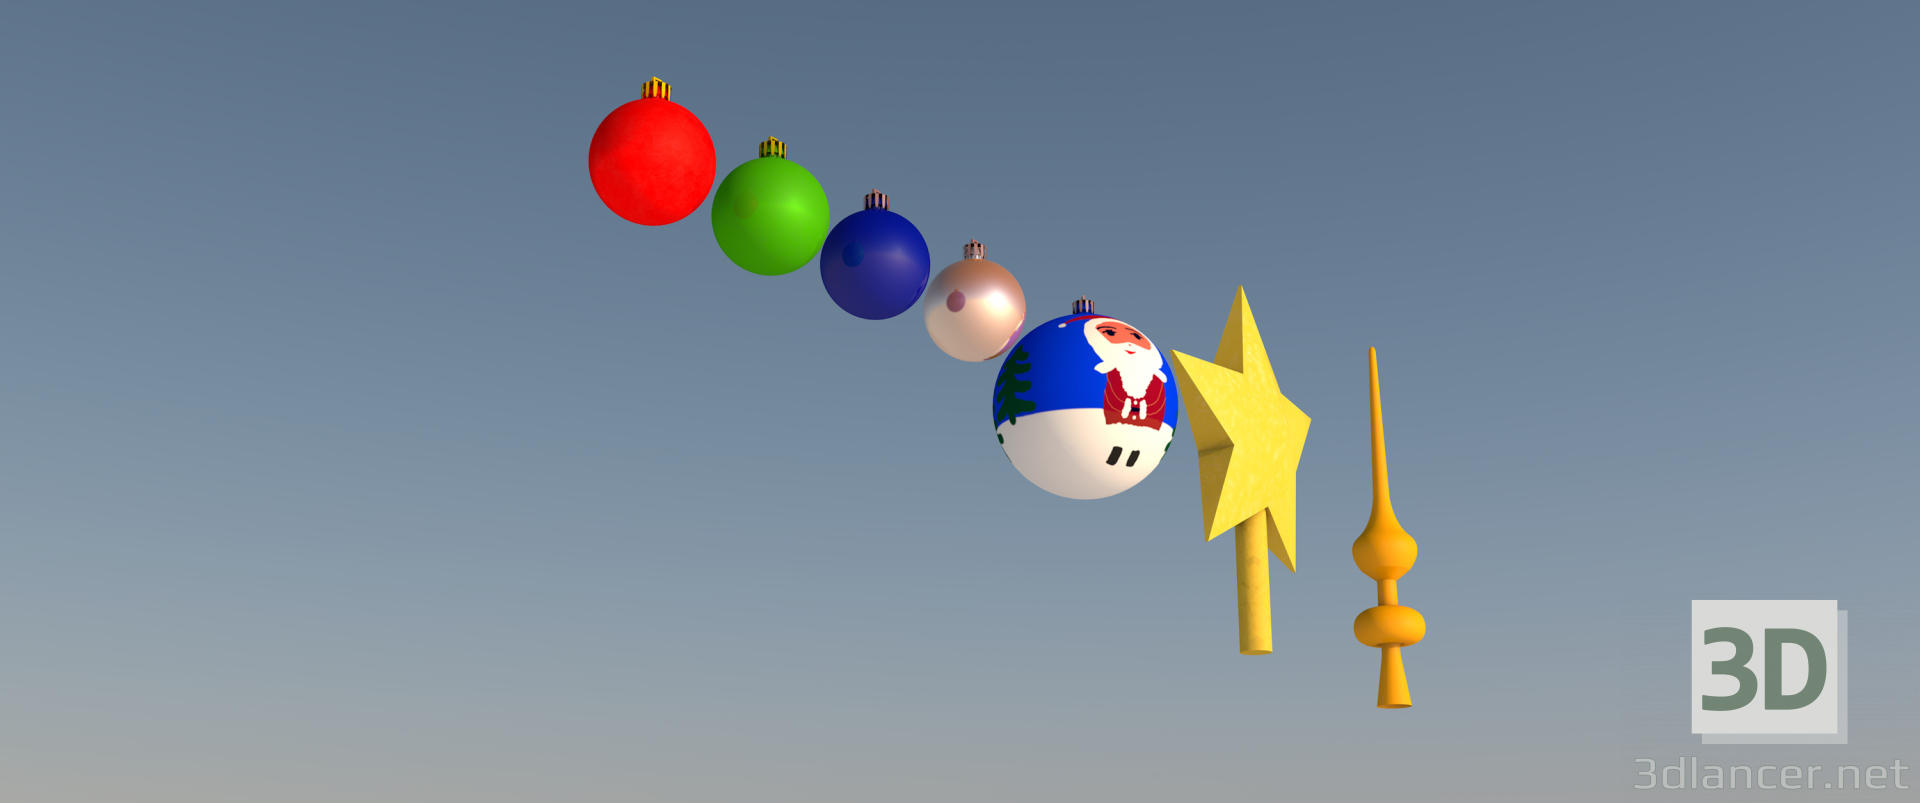 3d set of Christmas toys model buy - render